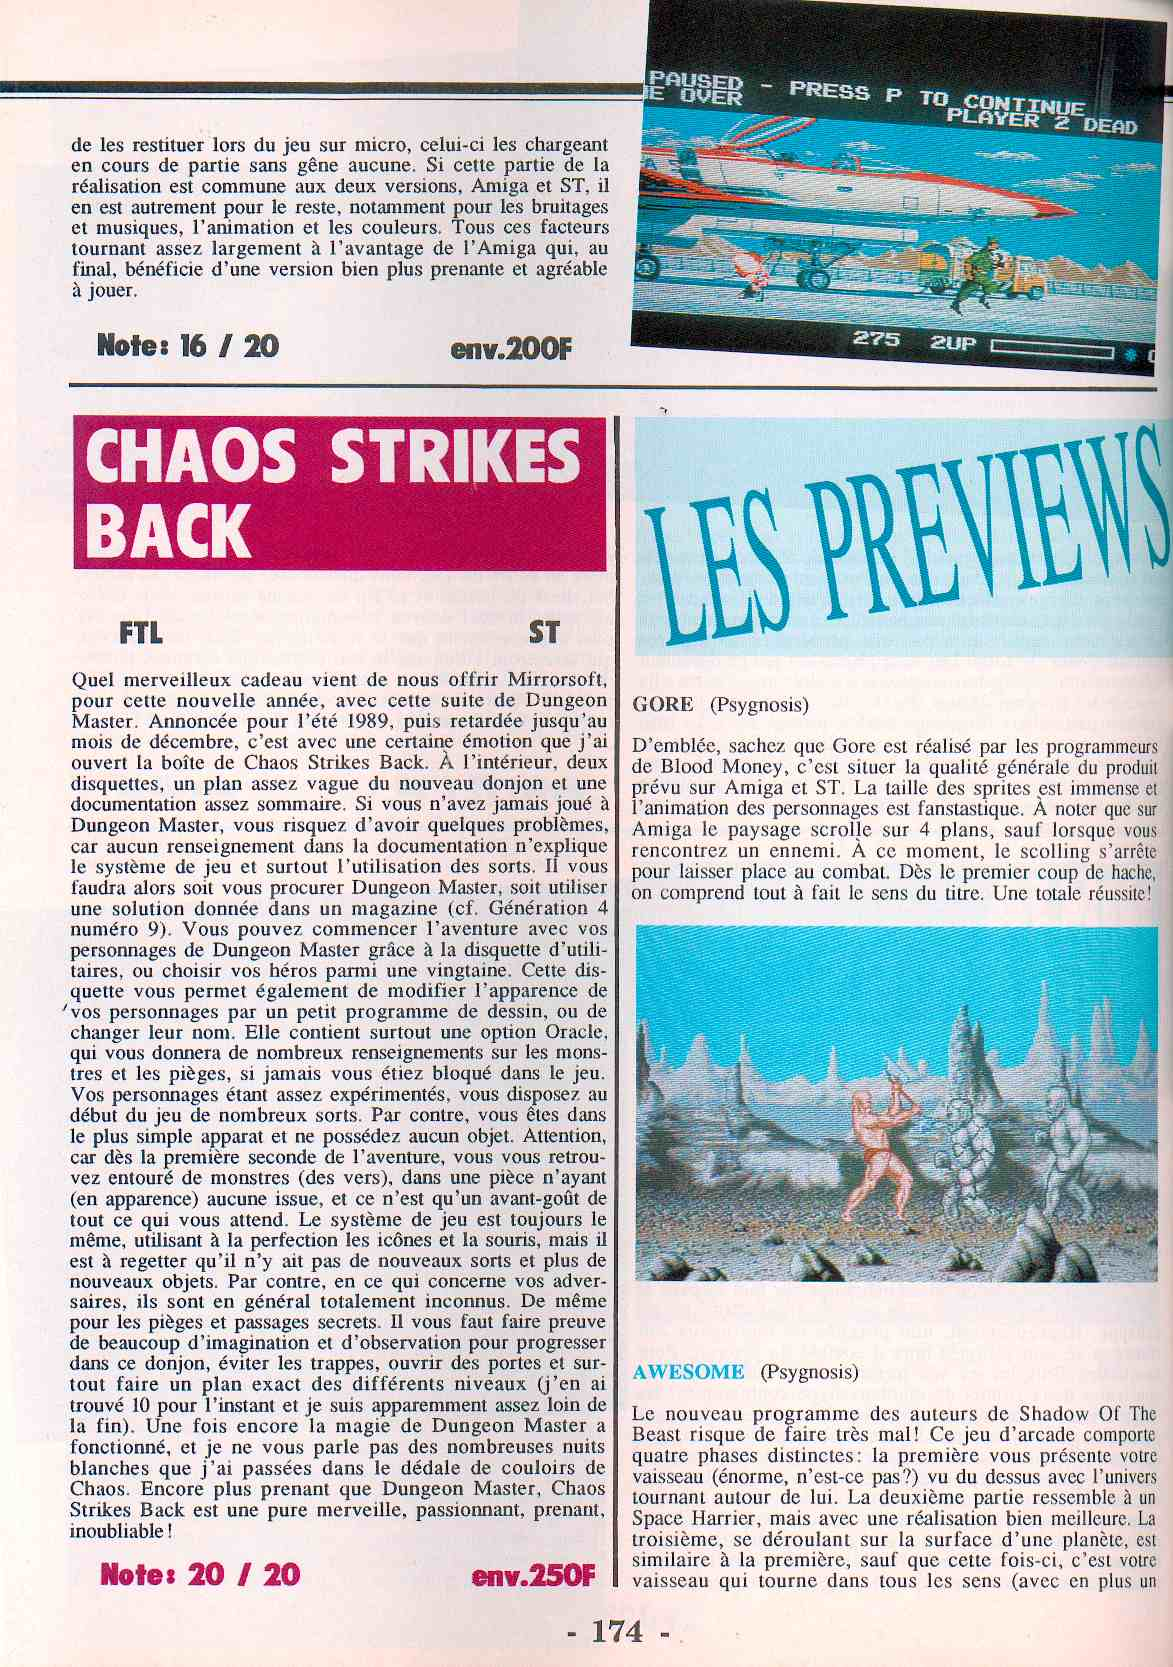 Chaos Strikes Back for Atari ST Review published in French magazine 'STMag', Issue #37, February 1990, Page 174